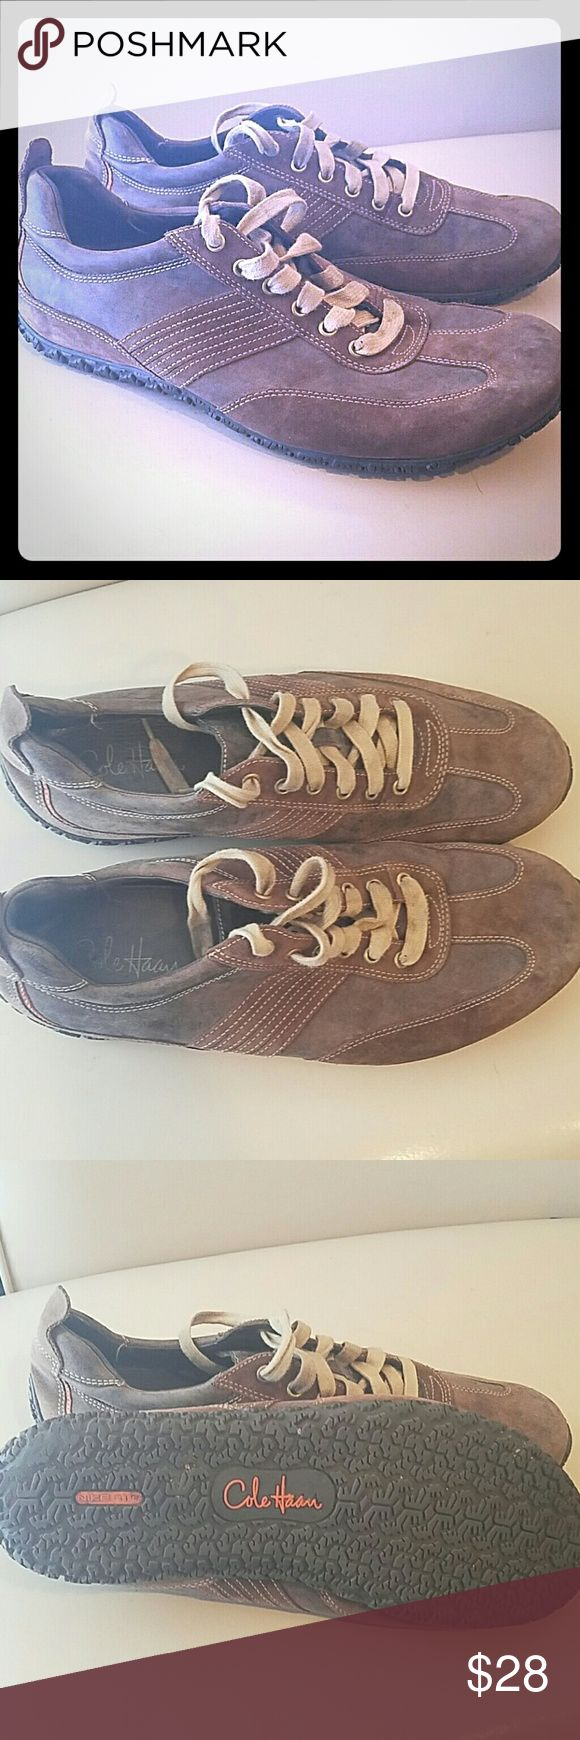 Mens Cole Haan w/ Nike Air Brown Leather Sneakers An absolutely amazing pair of Cole Haan sneakers. These have Nike technology and are in great used condition. They are brown leather with laces and have a great amount of tread left. Shoes Sneakers